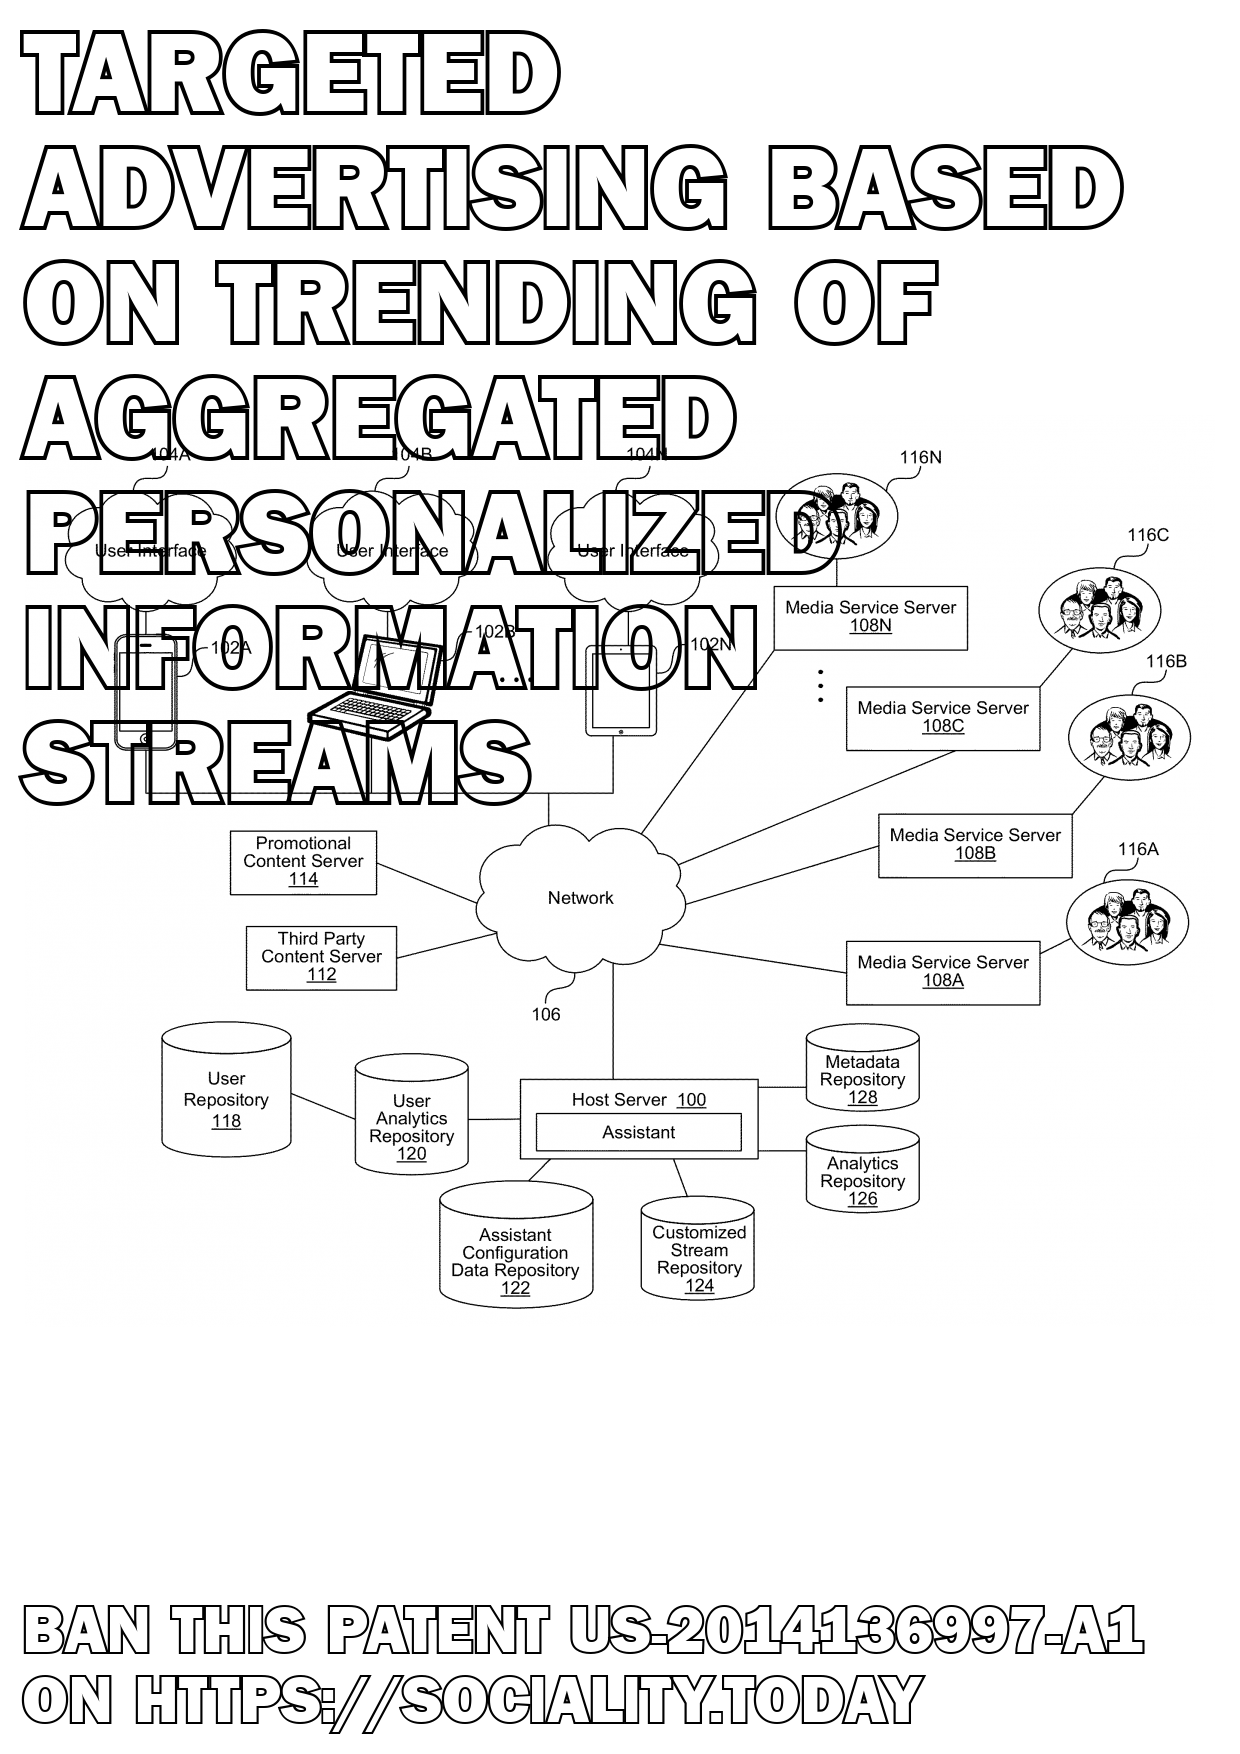 Targeted advertising based on trending of aggregated personalized information streams  - US-2014136997-A1